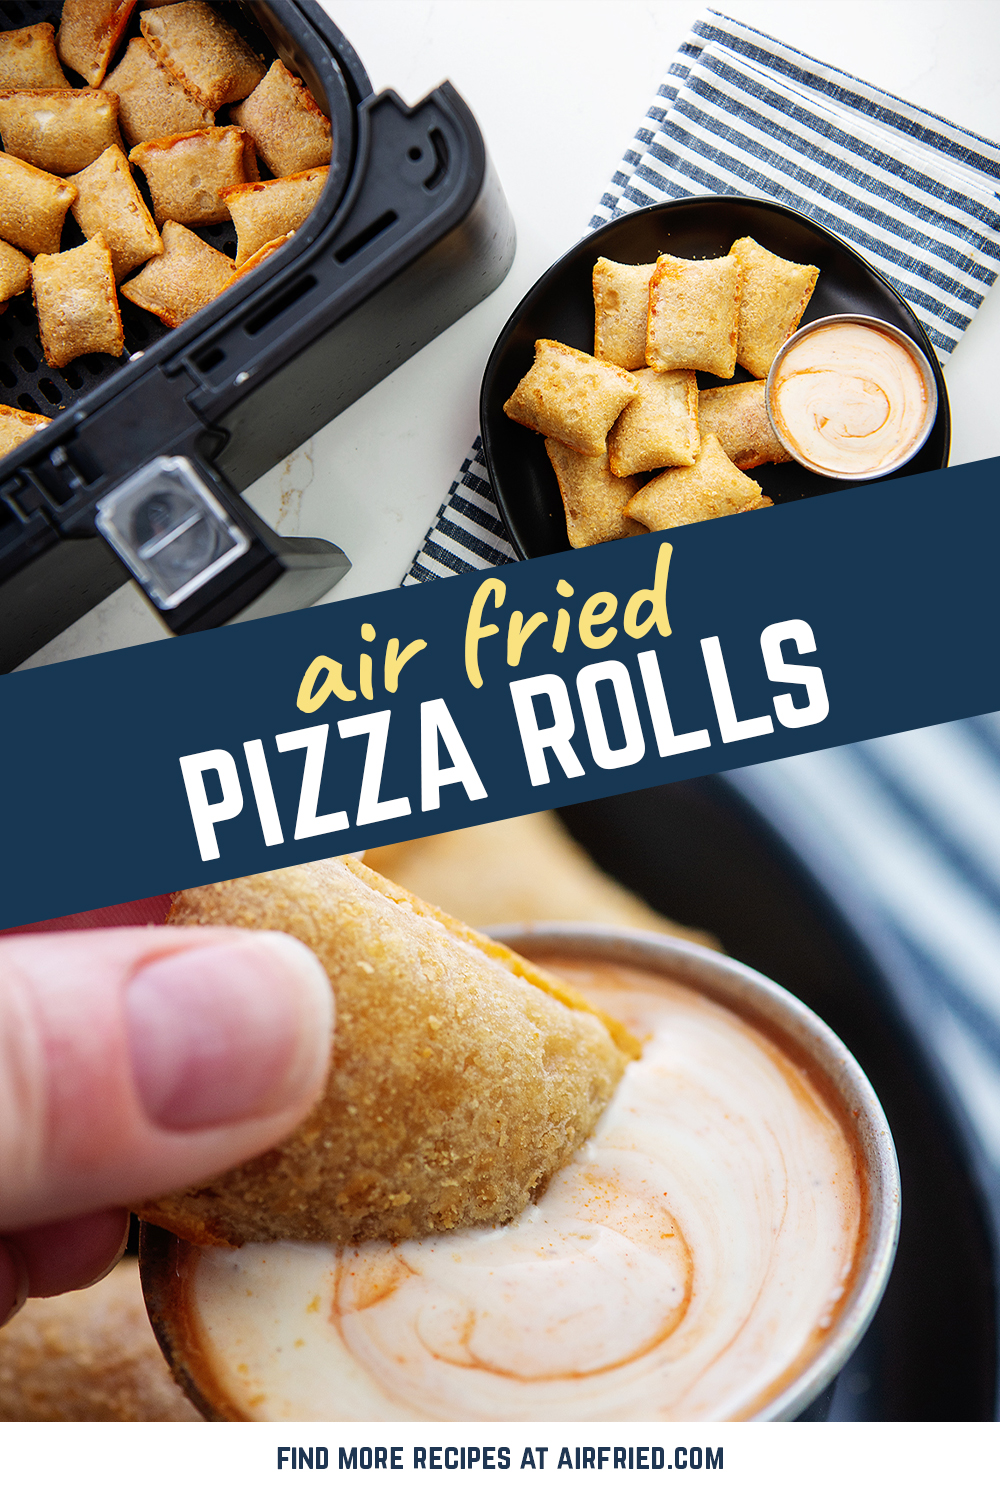 Crispy pizza rolls are easy to make in an air fryer.  Try this out and it will be your new favorite way to cook them!  #airfried #frozenrecipes #pizzarolls